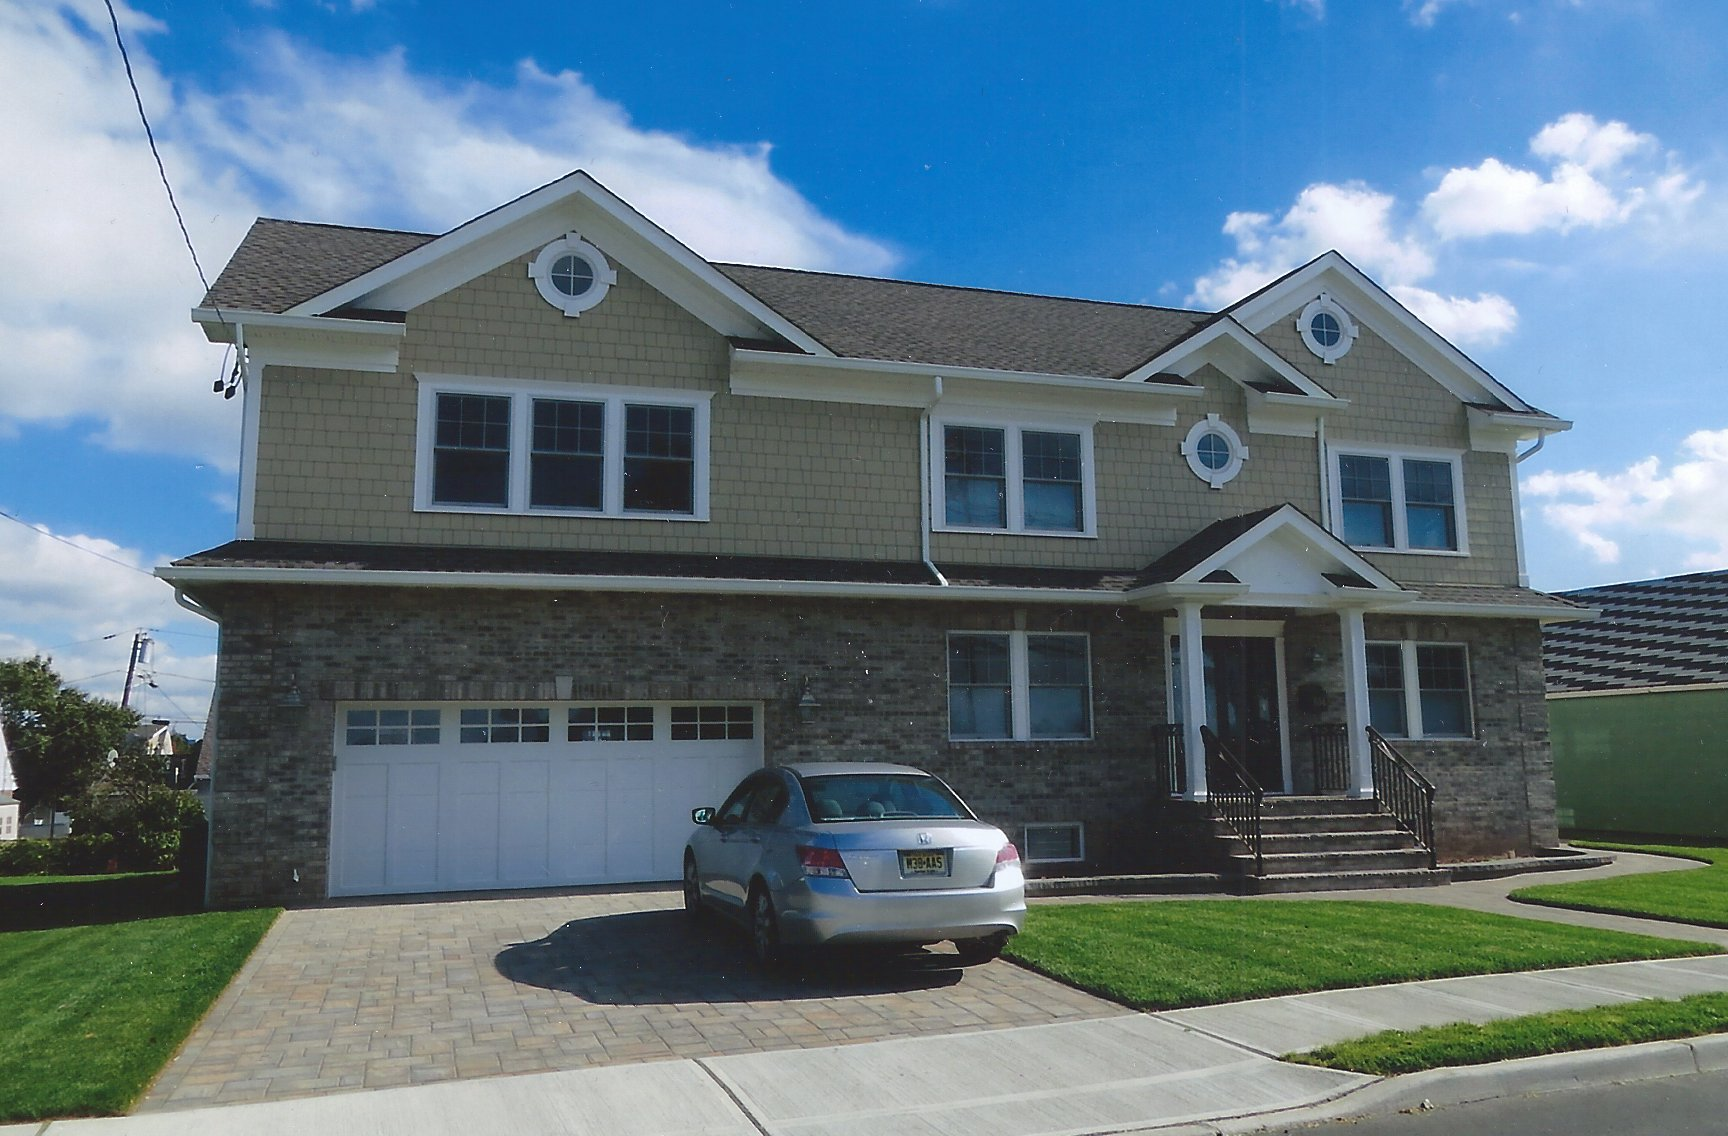 Home Renovation in Secaucus, NJ